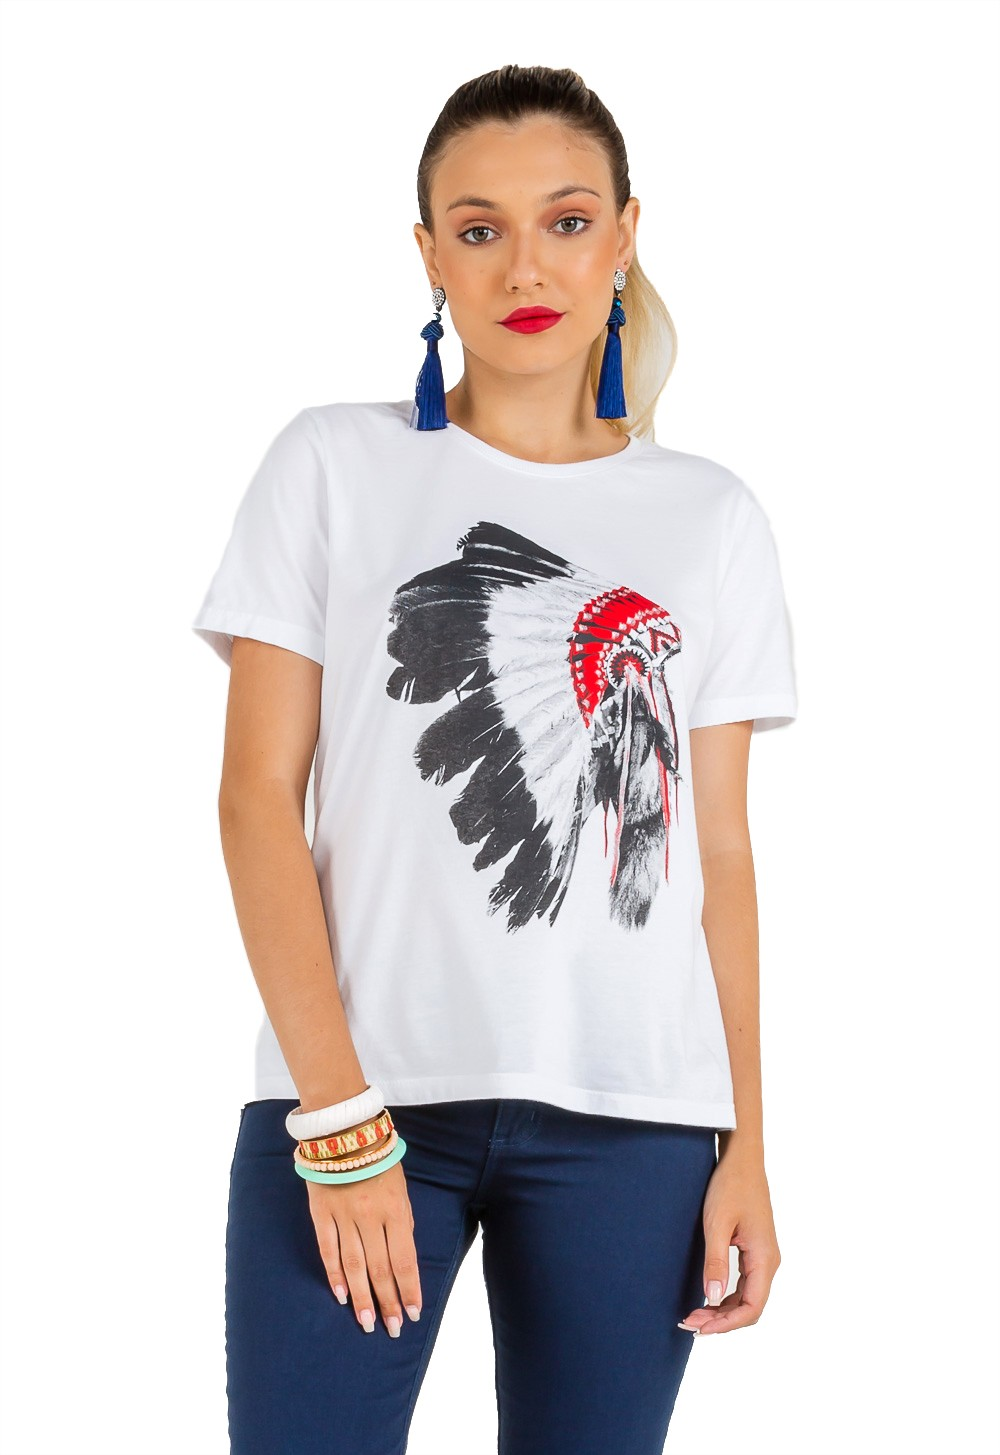 T-shirt Feminina Estampa Cocar